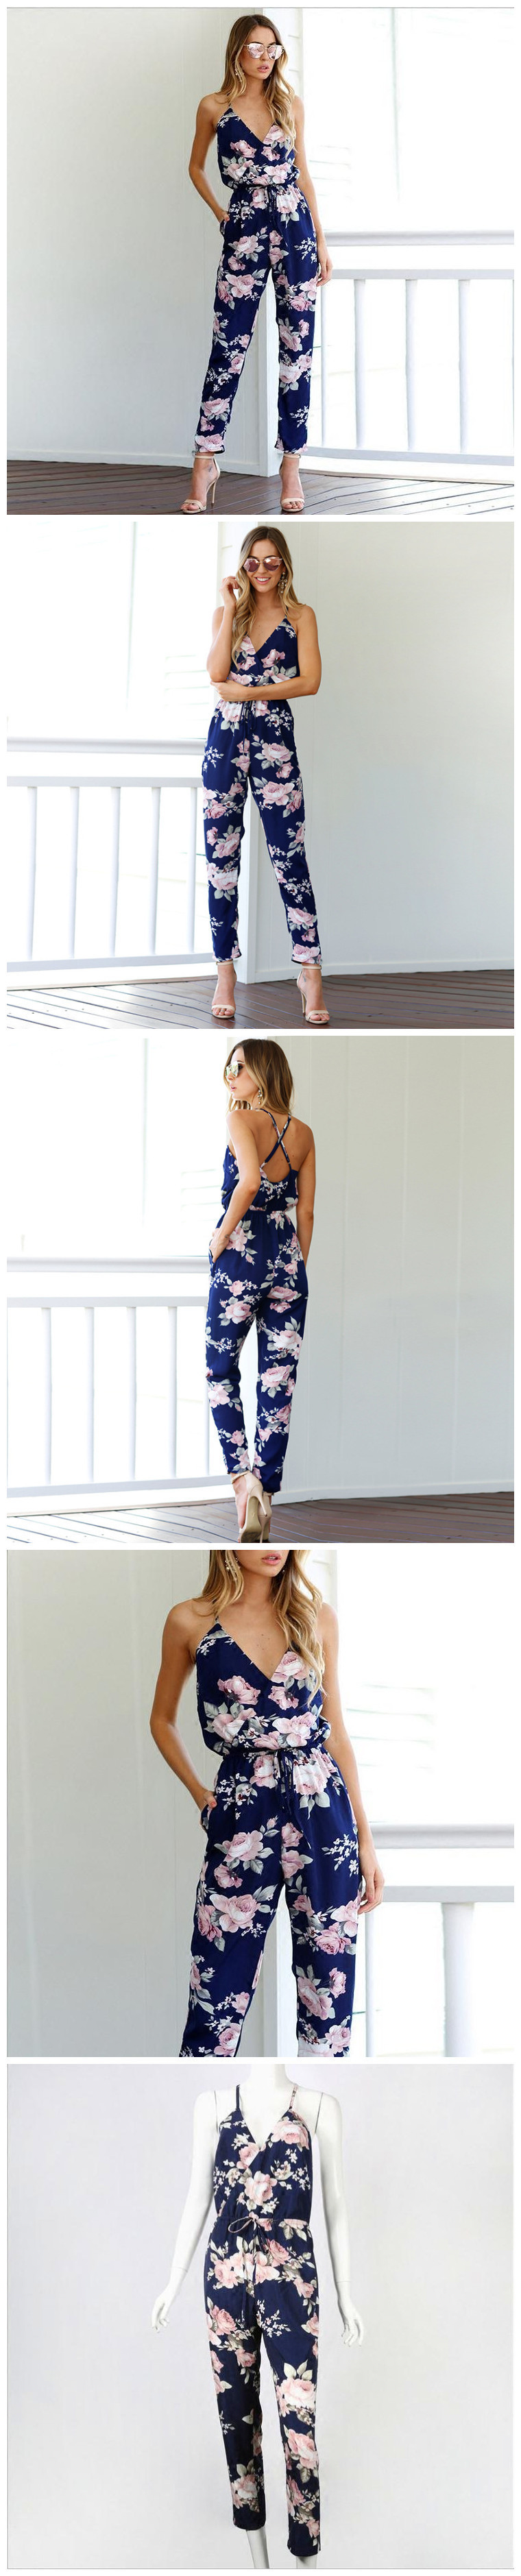 Jumpsuit women 39 s straps waist loose harem pants trousers floral holiday cross straps backless women 39 s clothing in Jumpsuits from Women 39 s Clothing